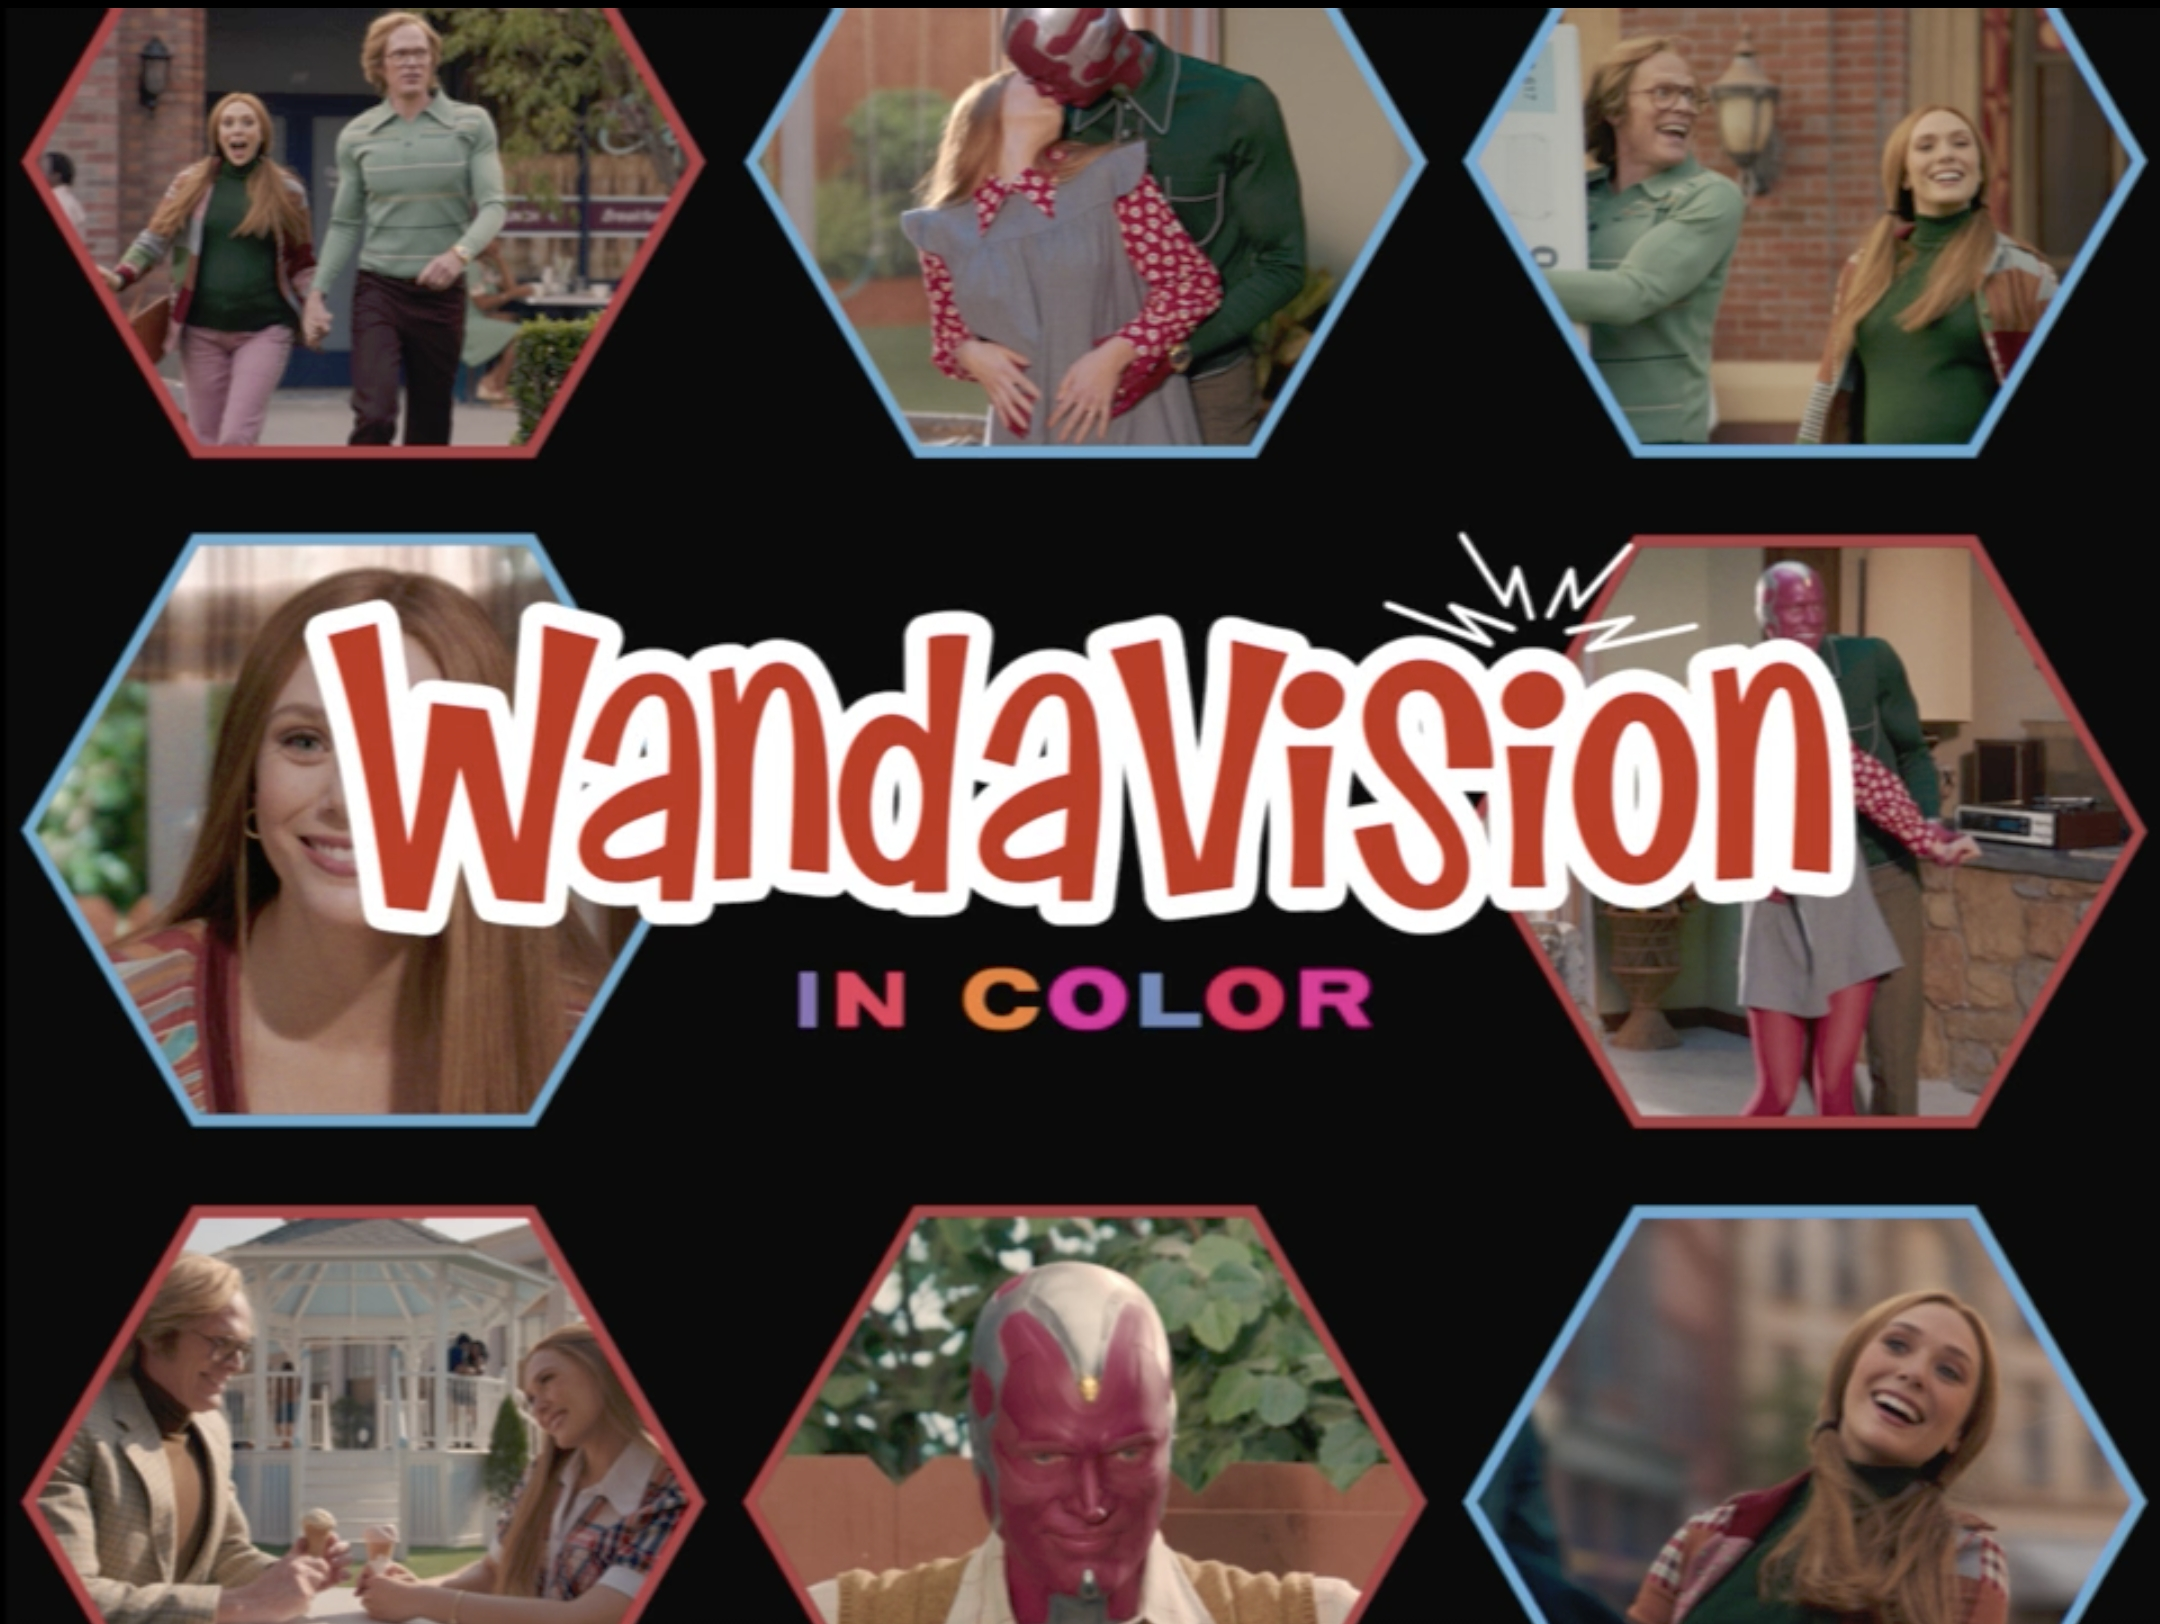 That '70s Episode Of 'WandaVision' Had Some Fun Connections To 'The Brady Bunch'